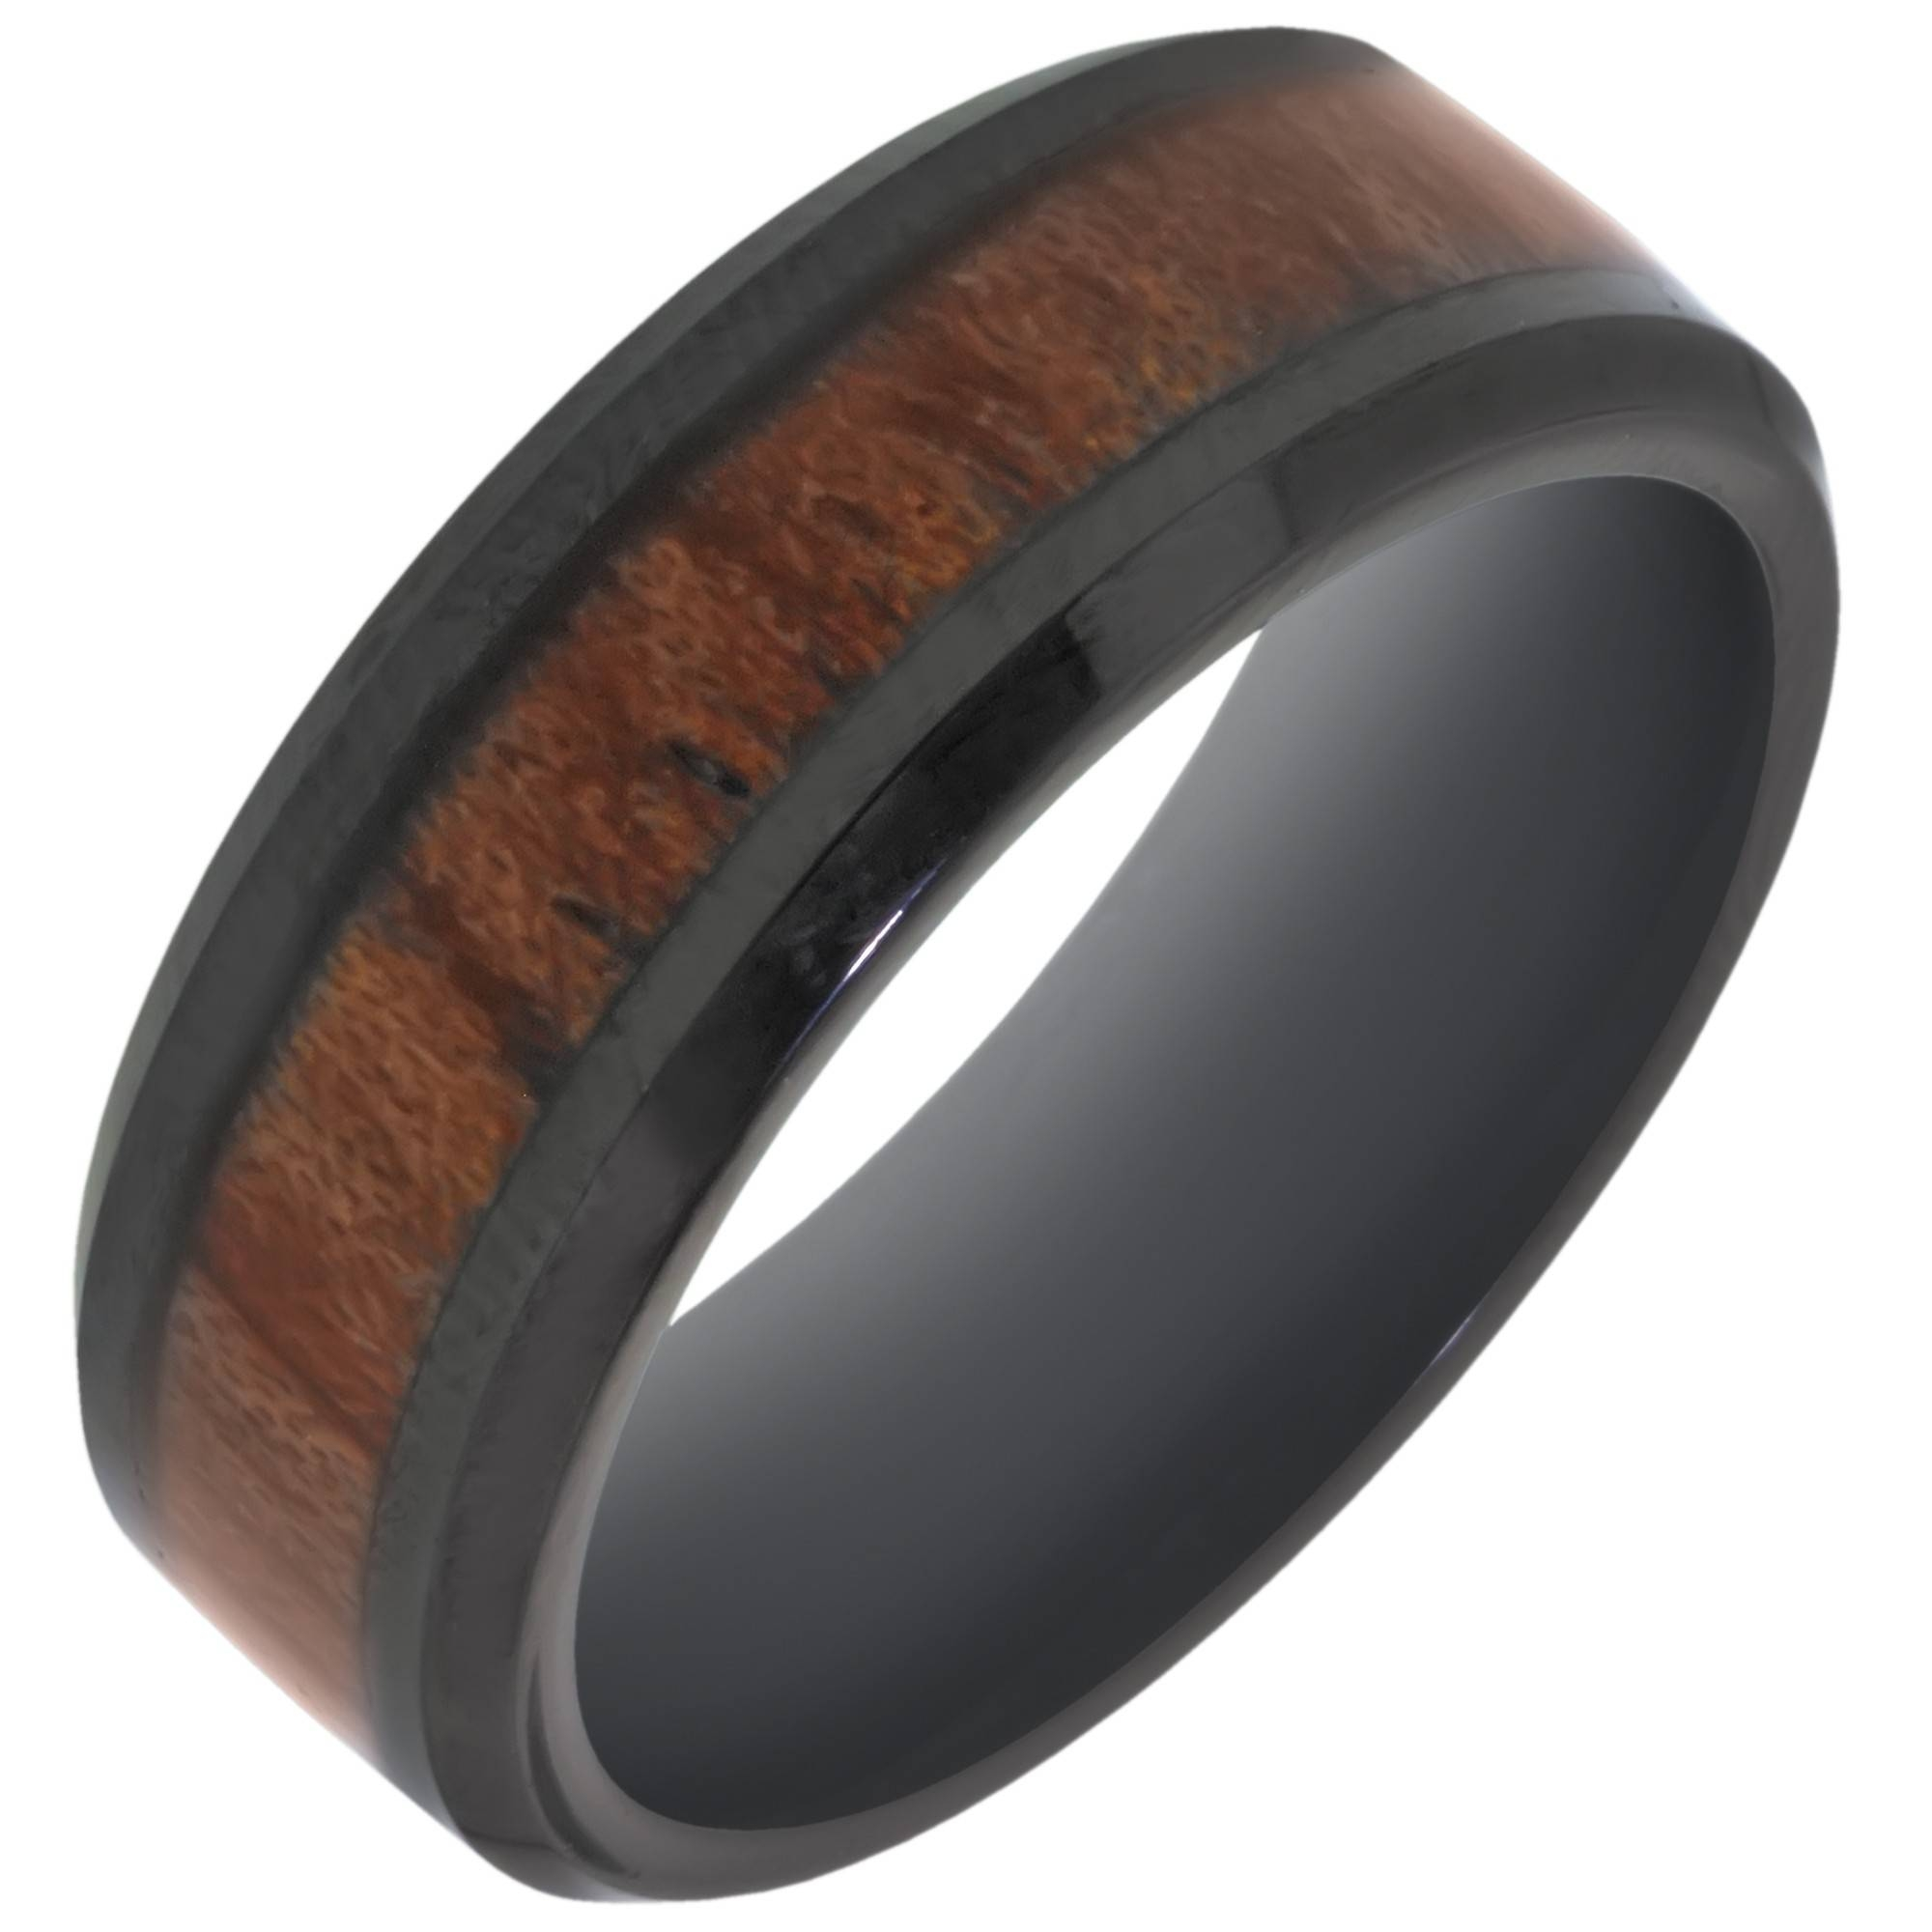 Benchmark Black Cobalt Chrome With Wood Inlay Wedding Band (8mm) Regarding Men's Wedding Bands Wood Inlay (View 2 of 15)